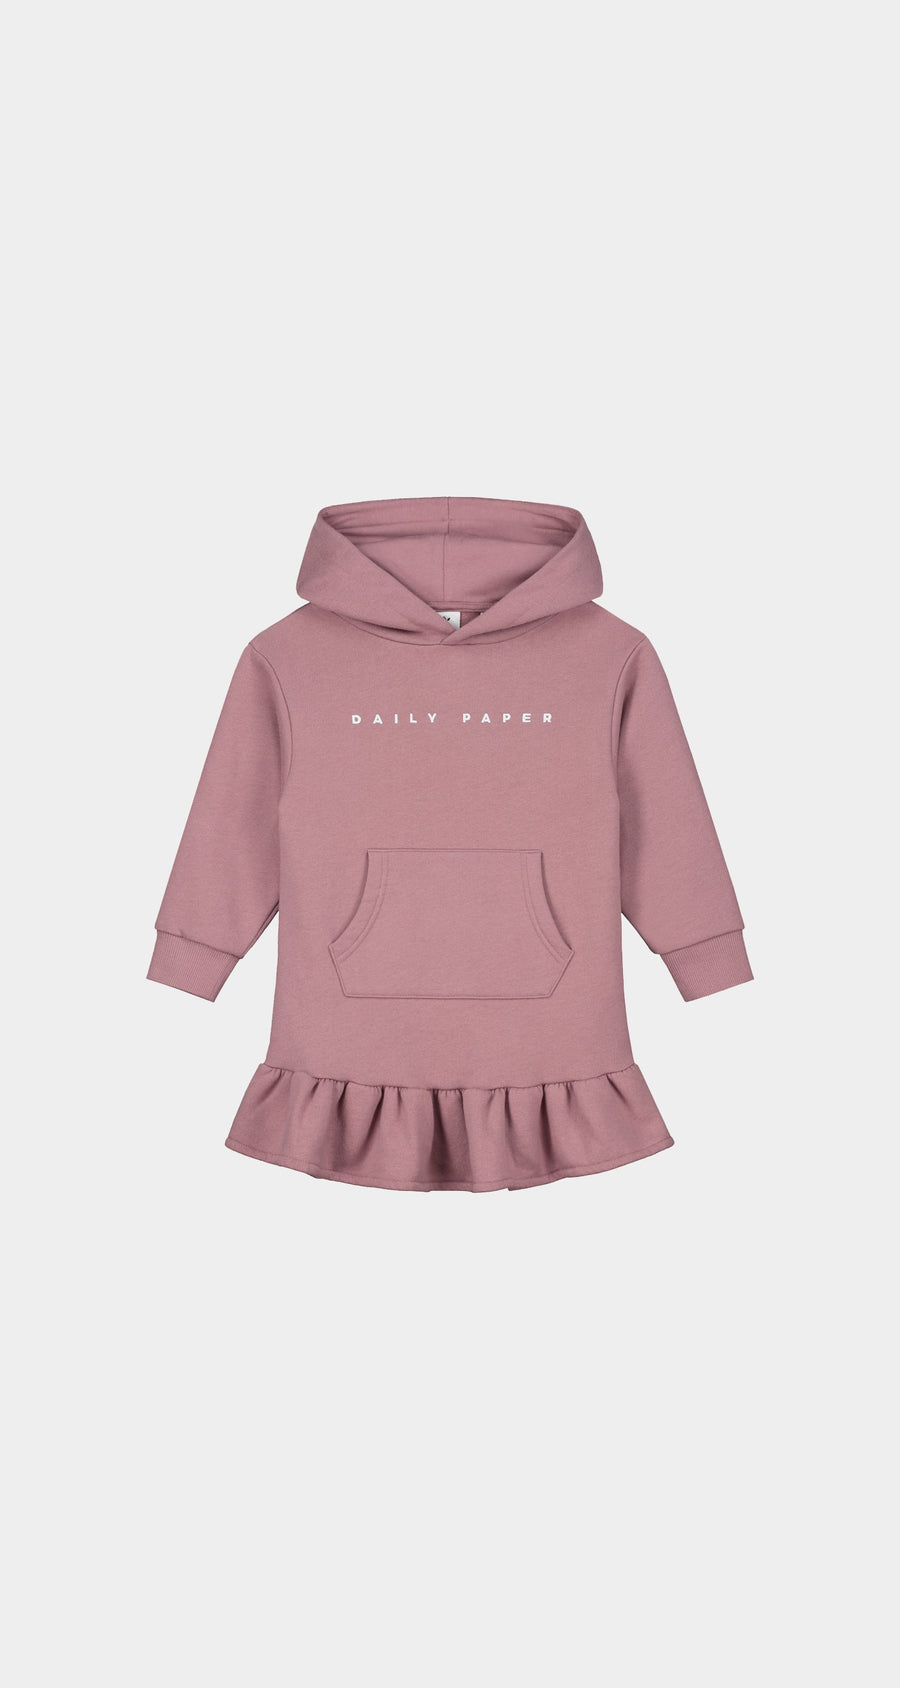 Daily Paper - Mauve Pink Kids Hoodie Dress - Front